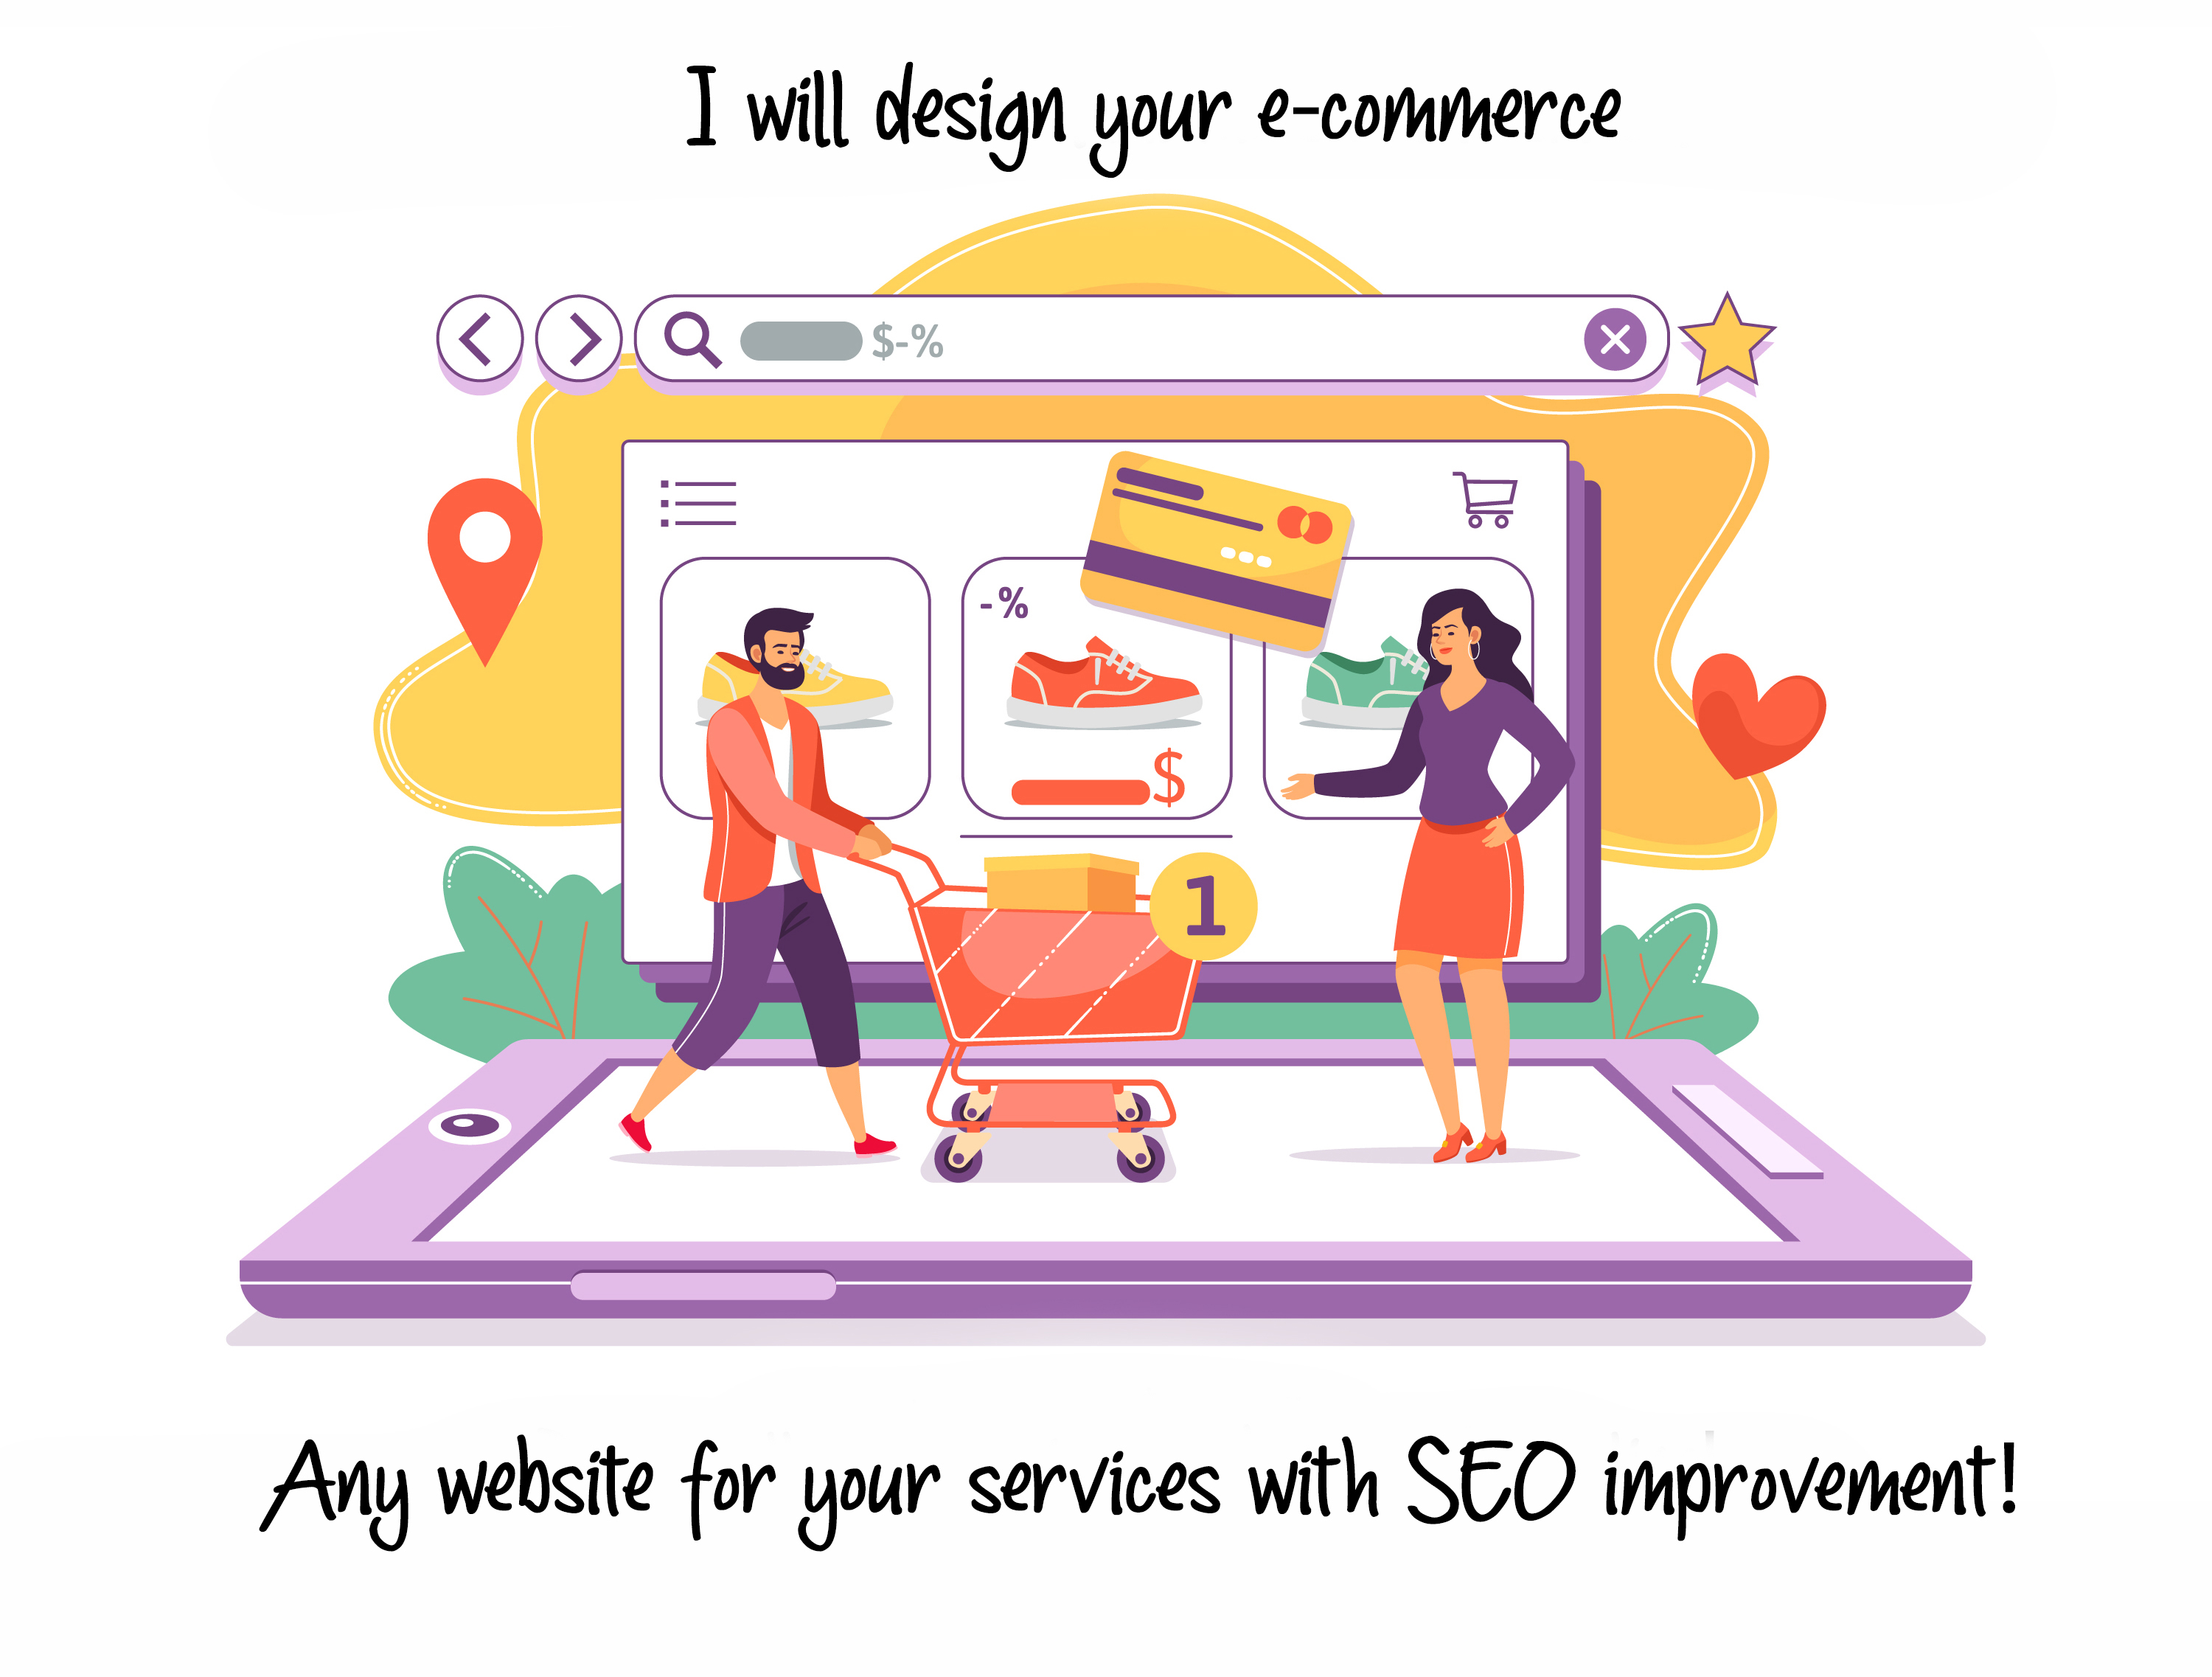 I will design your website or ecommerce with SEO IMPROVEMENT